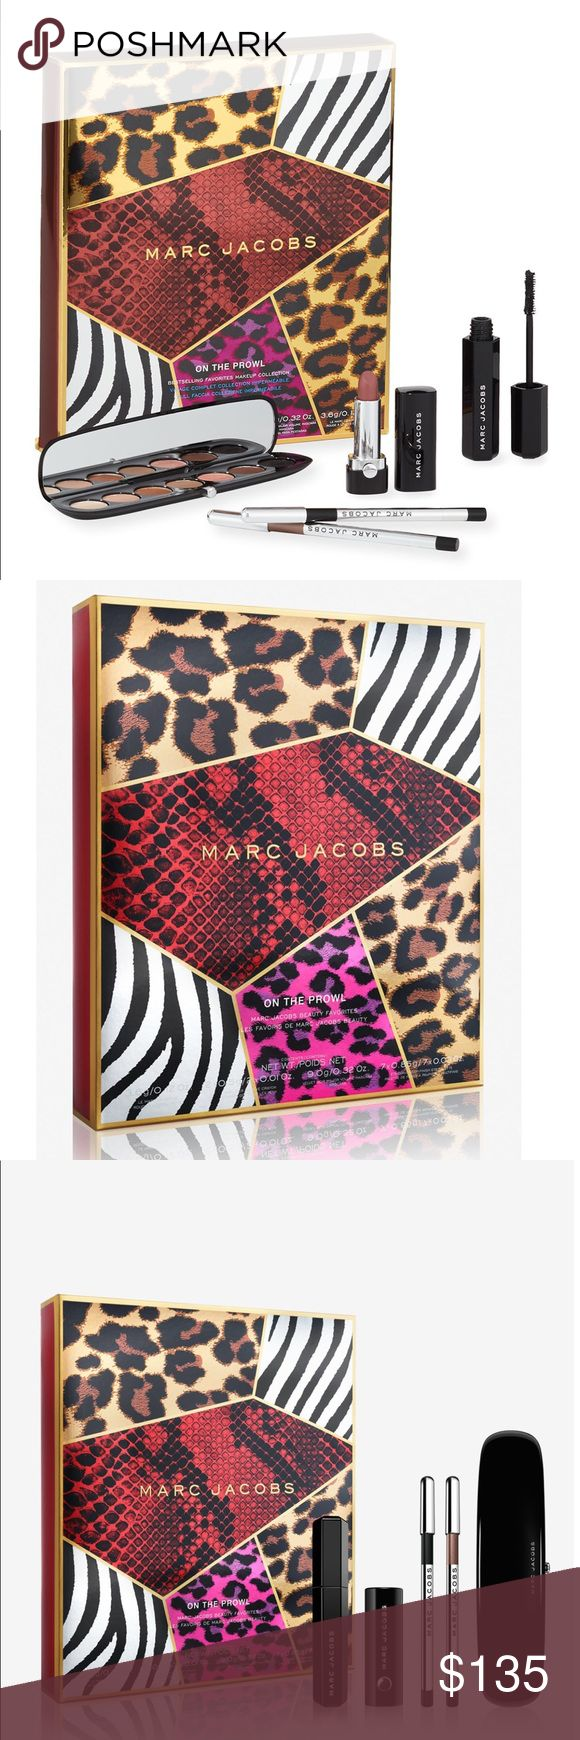 Marc Jacobs Collection Marc Jacobs On the Prowl Full Face Collection. 100% authentic! Brand new with tags!   A limited edition 5-piece collection of bestselling longwear lipstick, volumizing mascara, waterproof gel eyeliners and a 7-pan eyeshadow palette. Marc Jacobs Makeup Eyeshadow